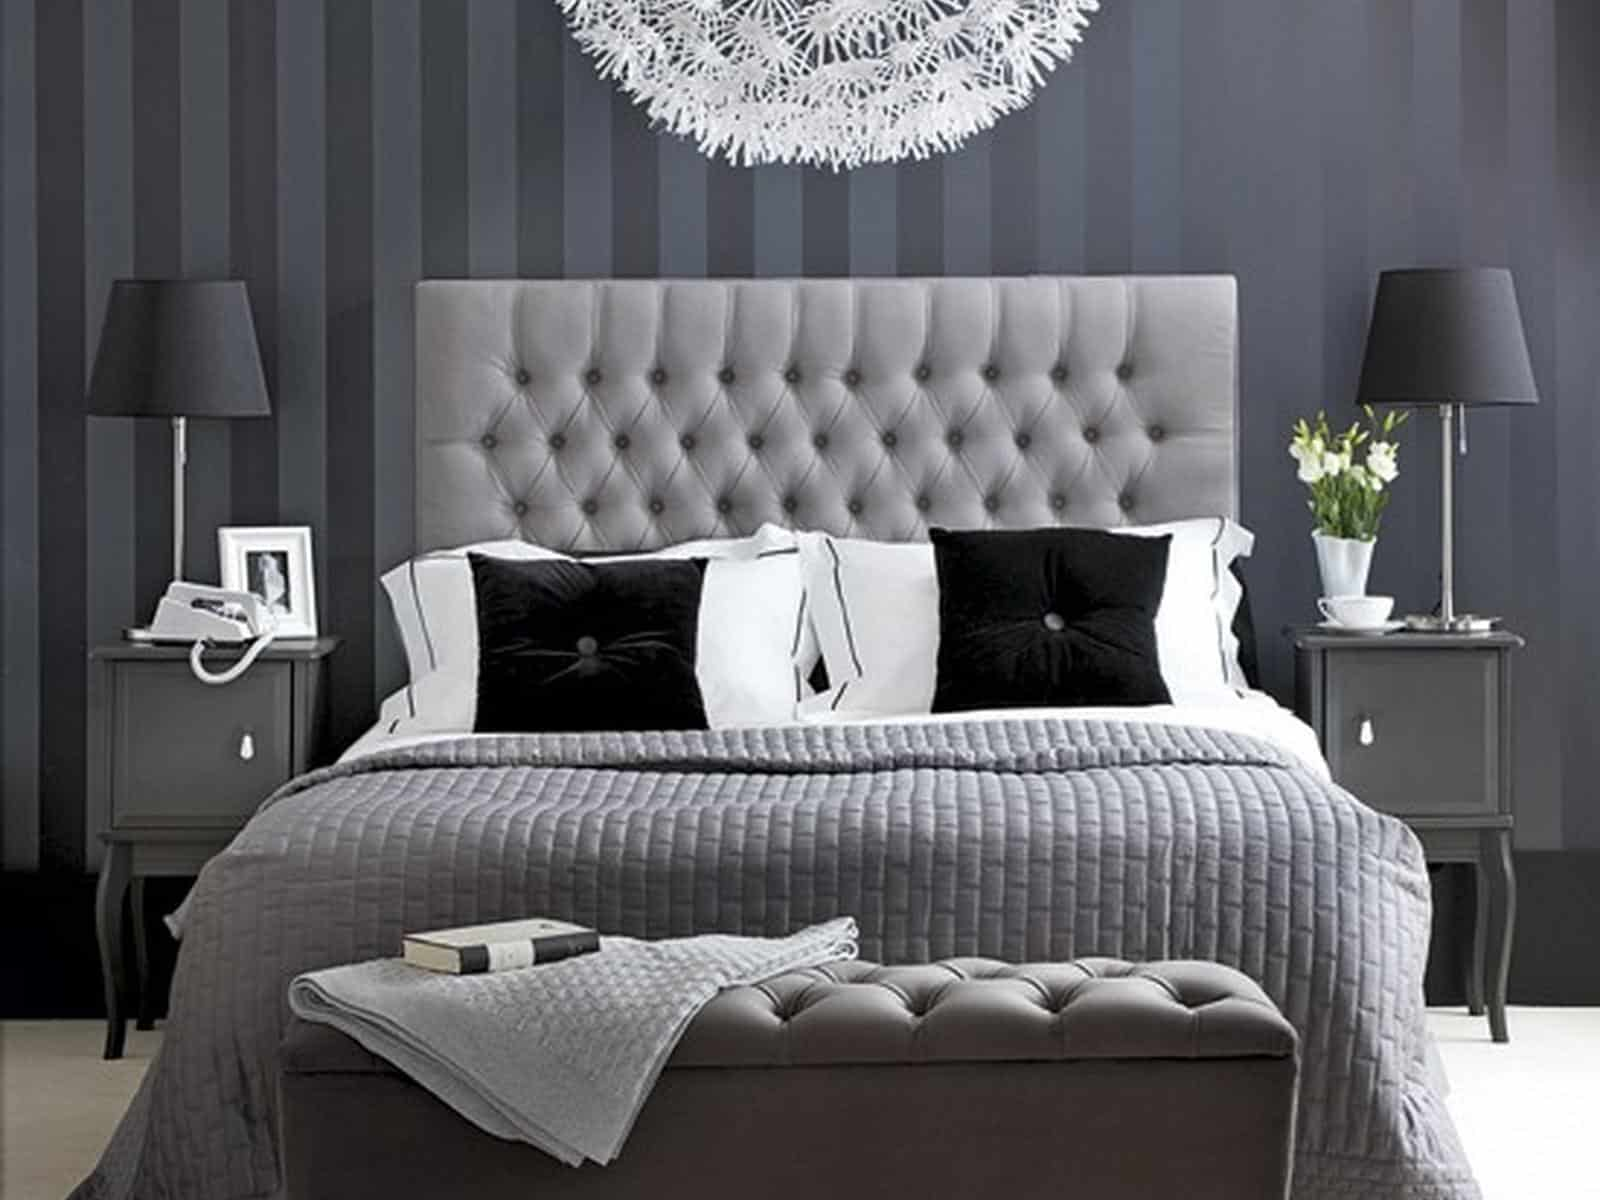 black and white with gray hints Chic Black And White Bedrooms That Are All The Rave